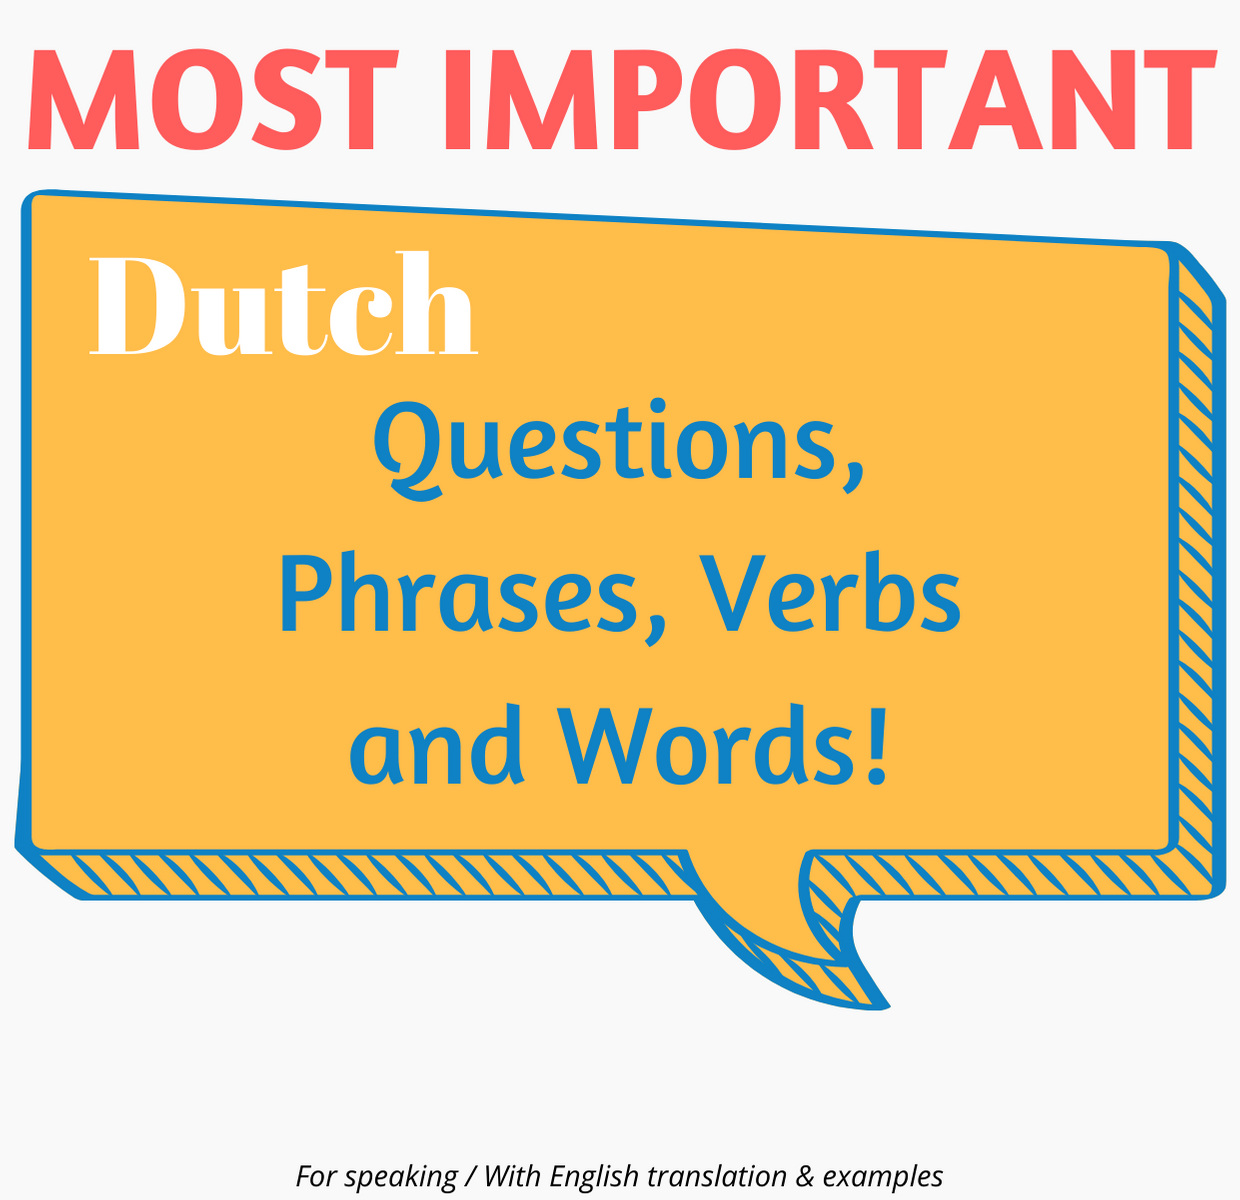 Register today to secure your spot on the exlusive and effective small Dutch group course in Amsterdam and other cities! - Get The 100 most important Dutch questions, phrases, verbs and words for FREE!